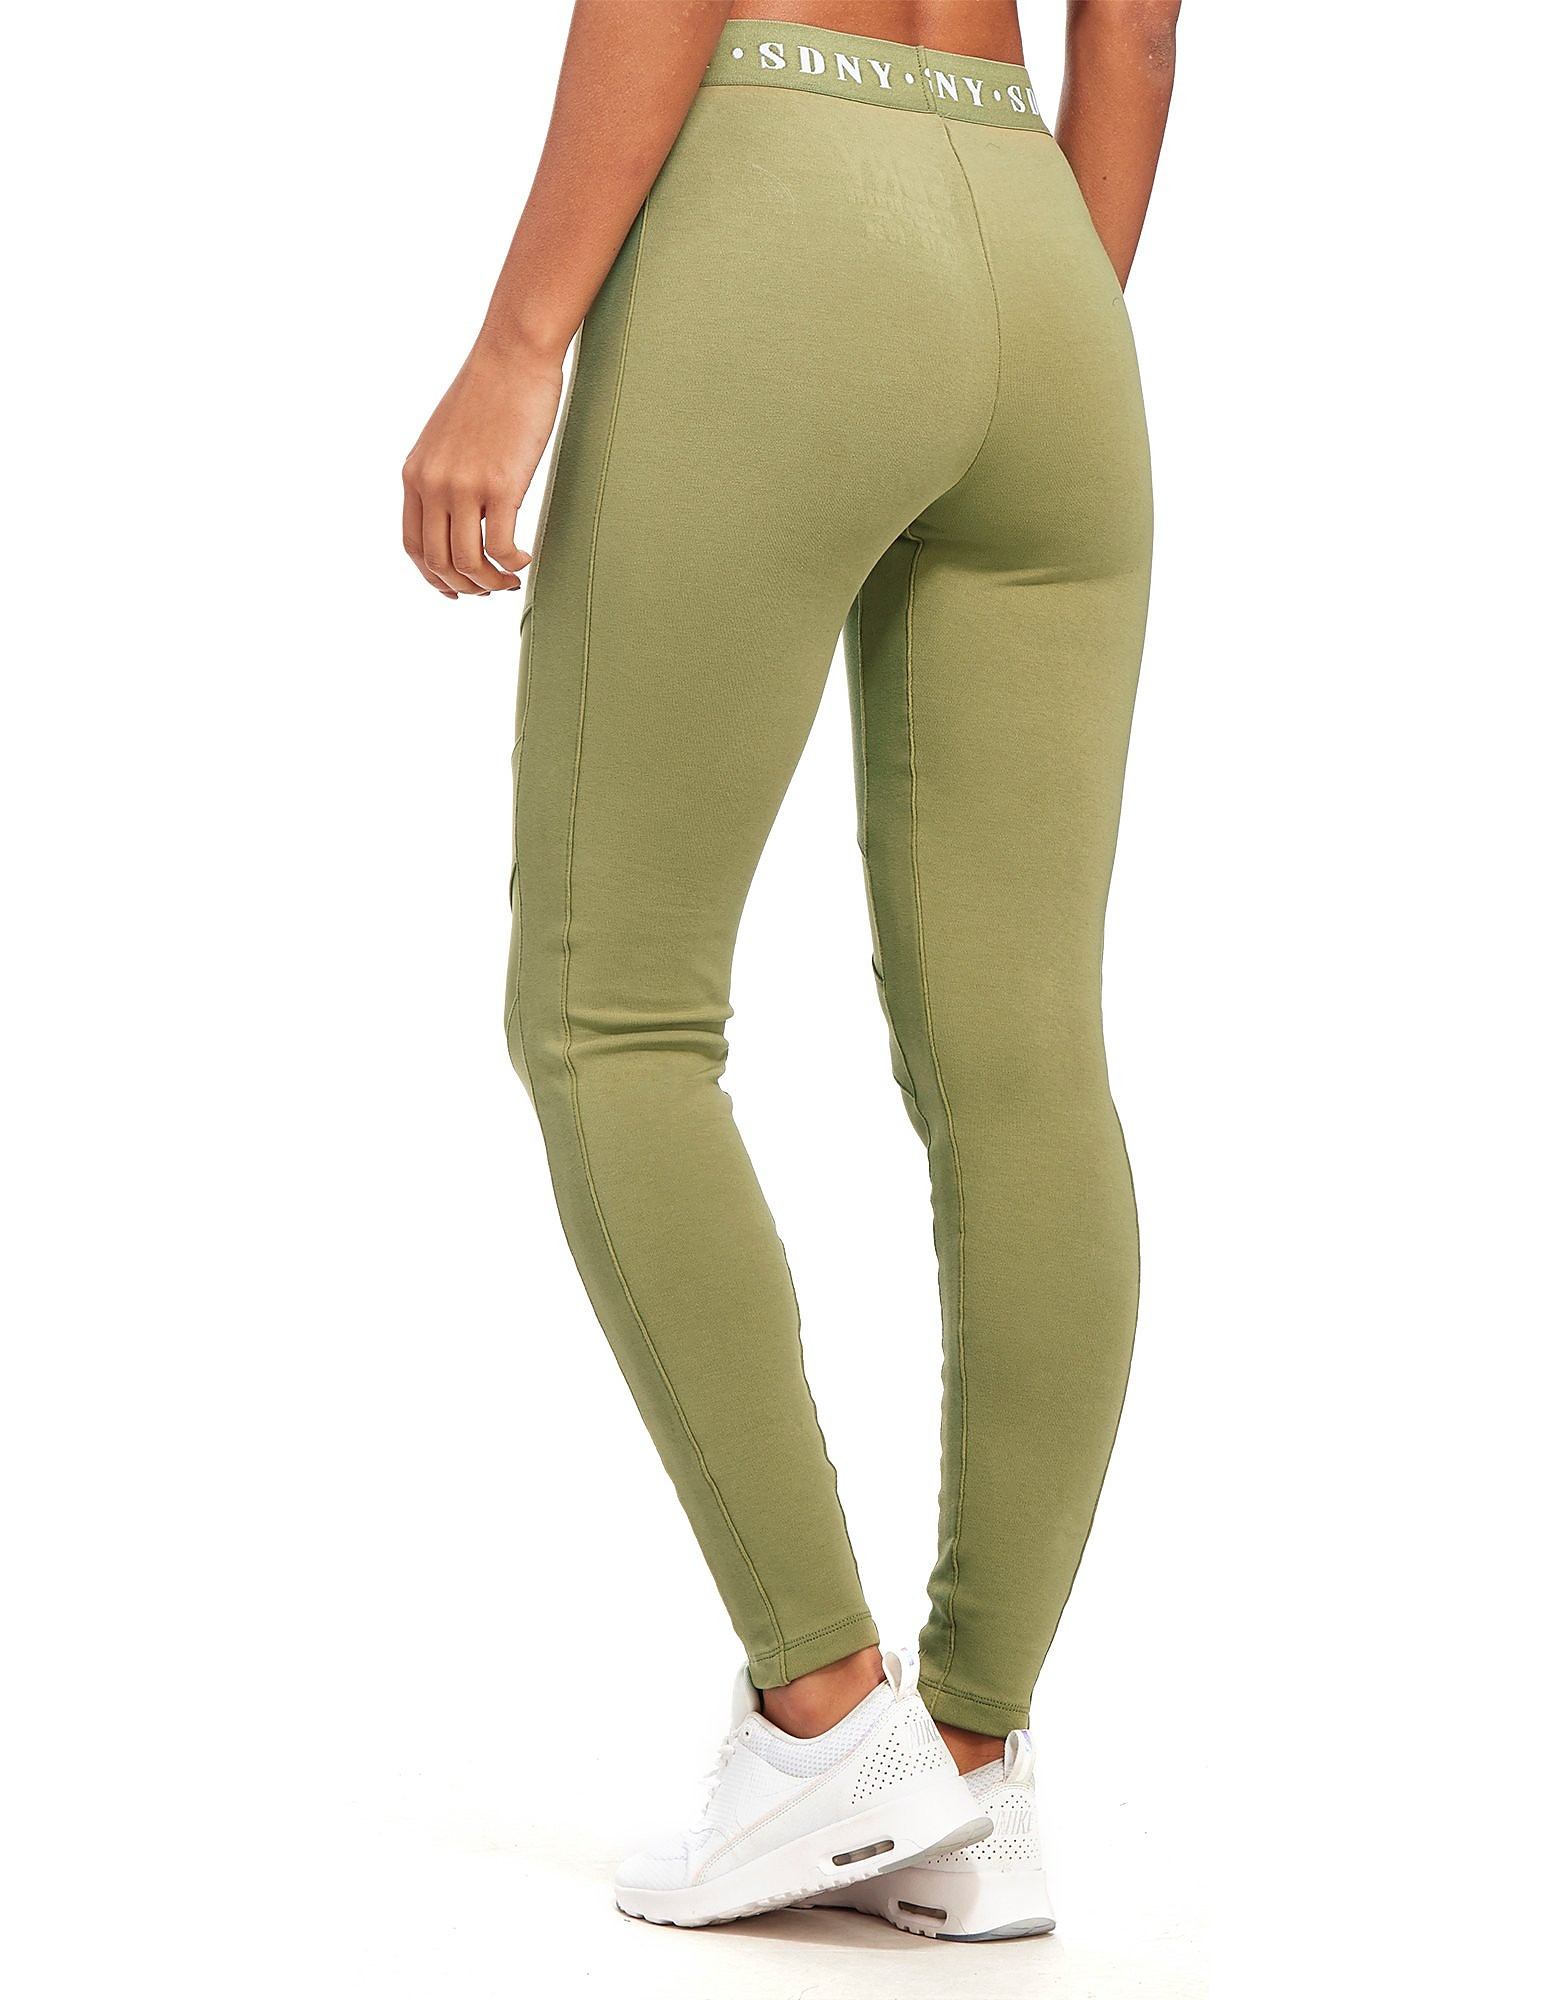 Supply & Demand Mesh Panel Leggings